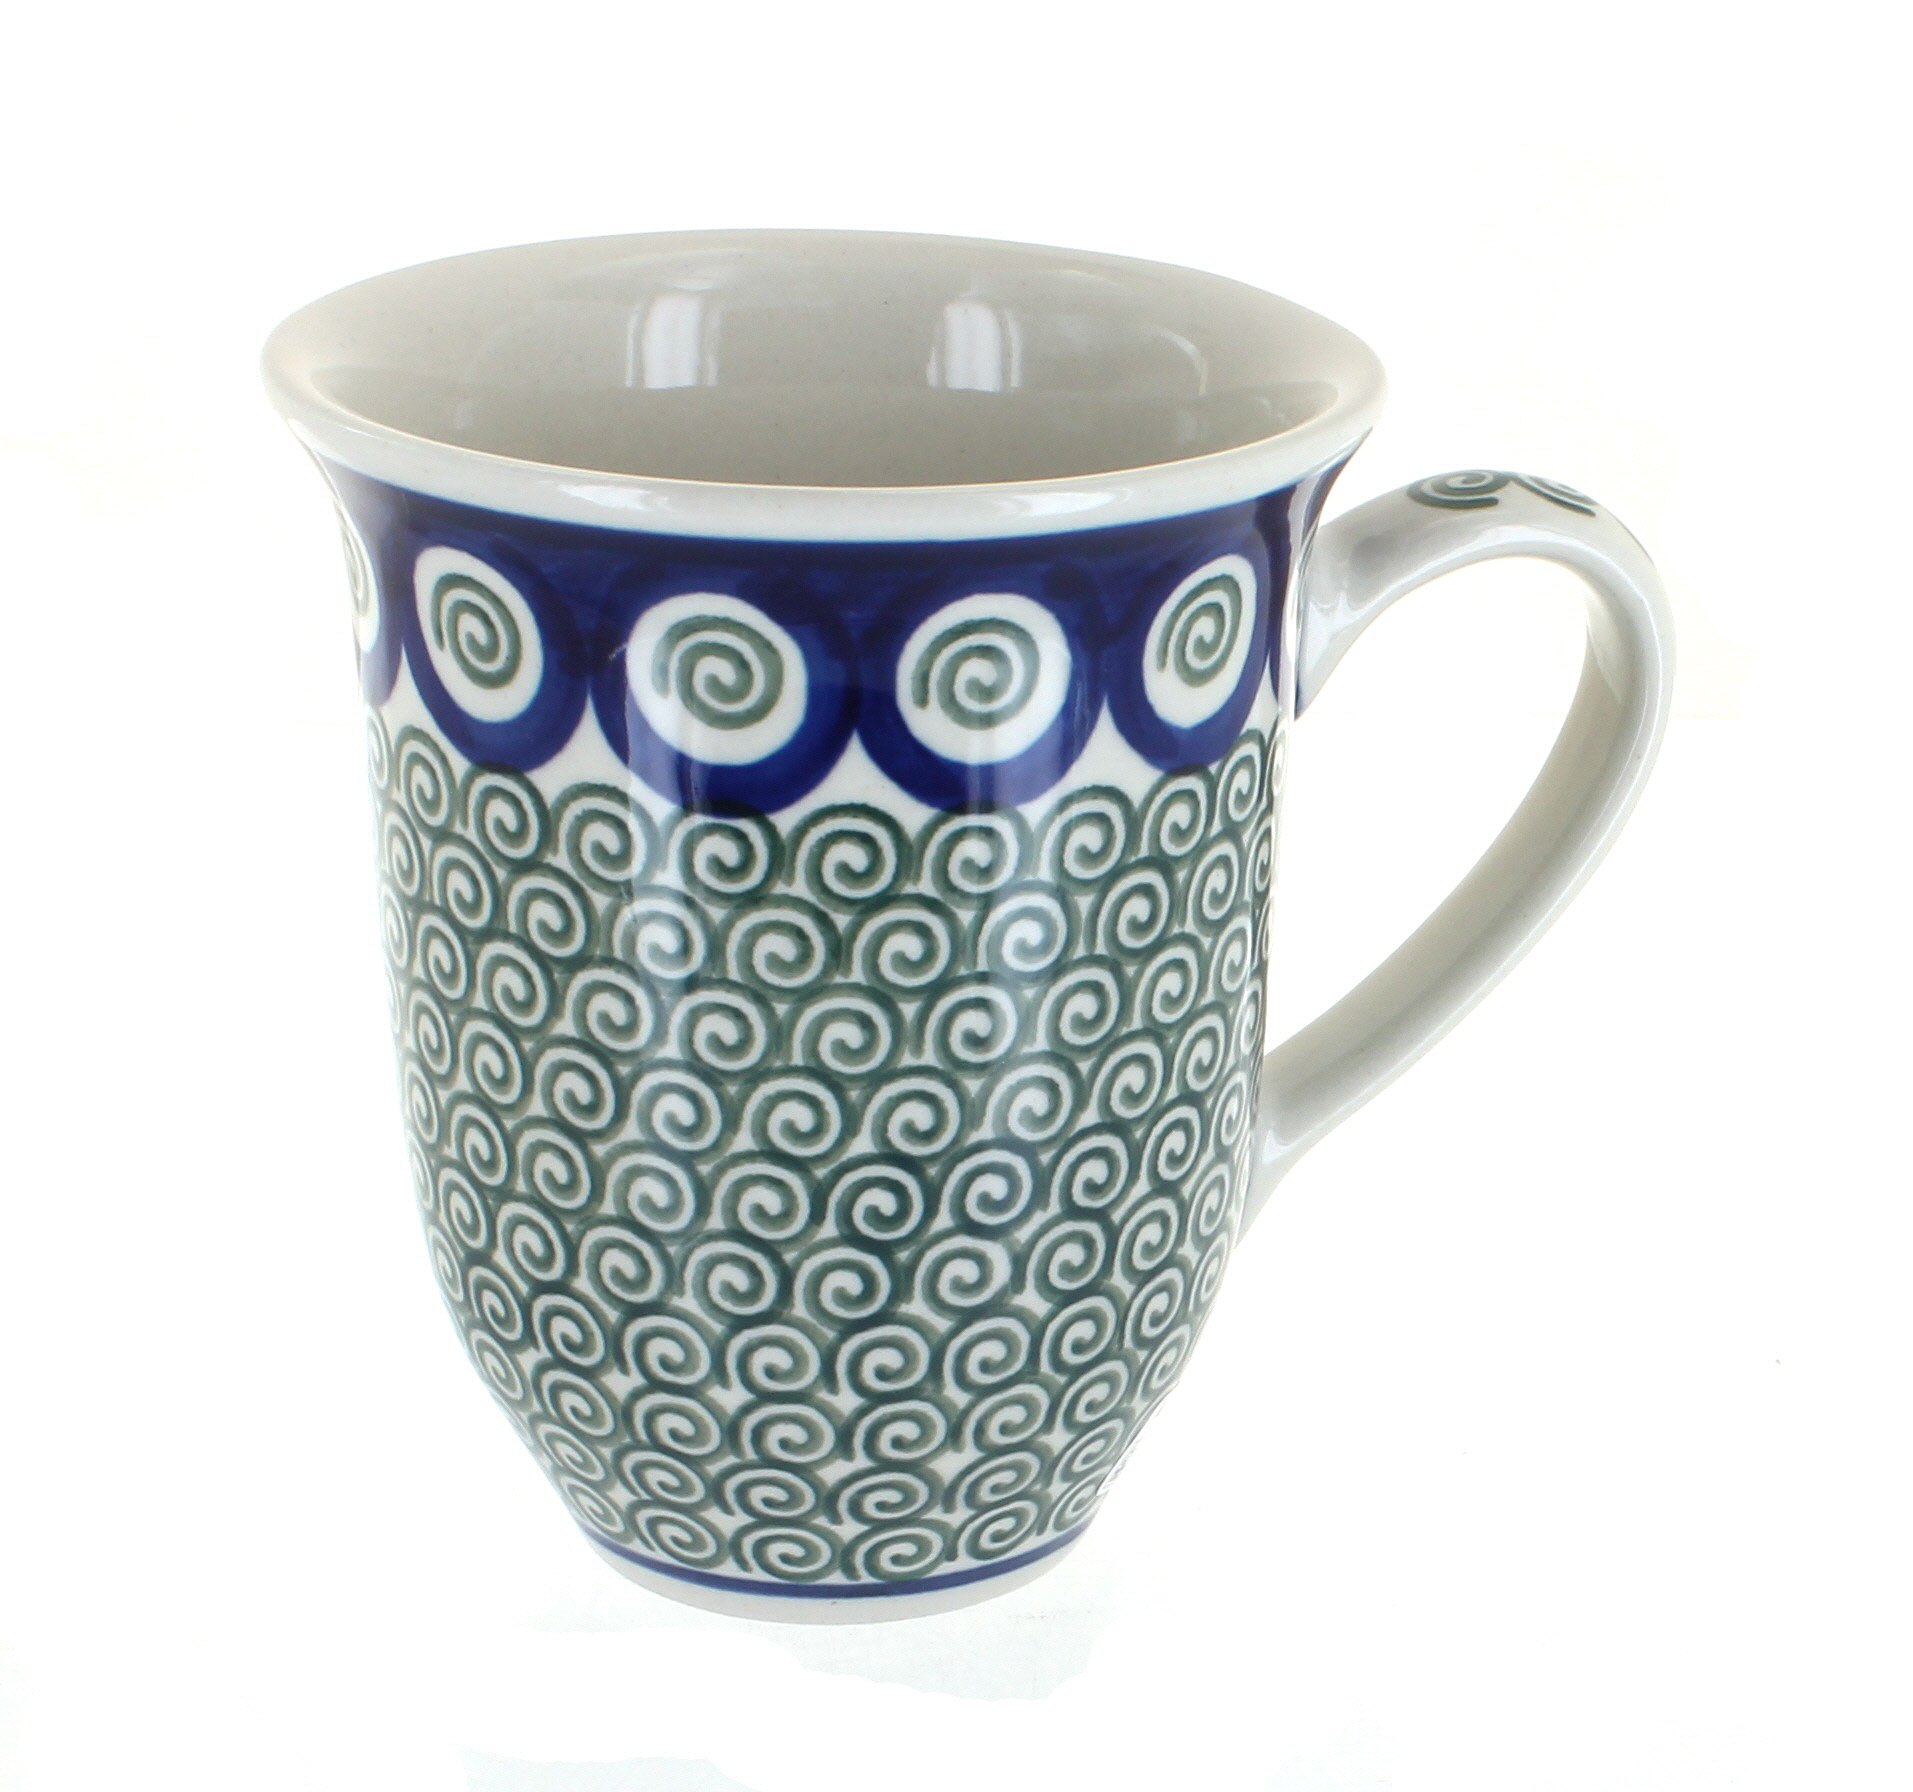 Polish Pottery Peacock Swirl Large Coffee Mug - Walmart.com